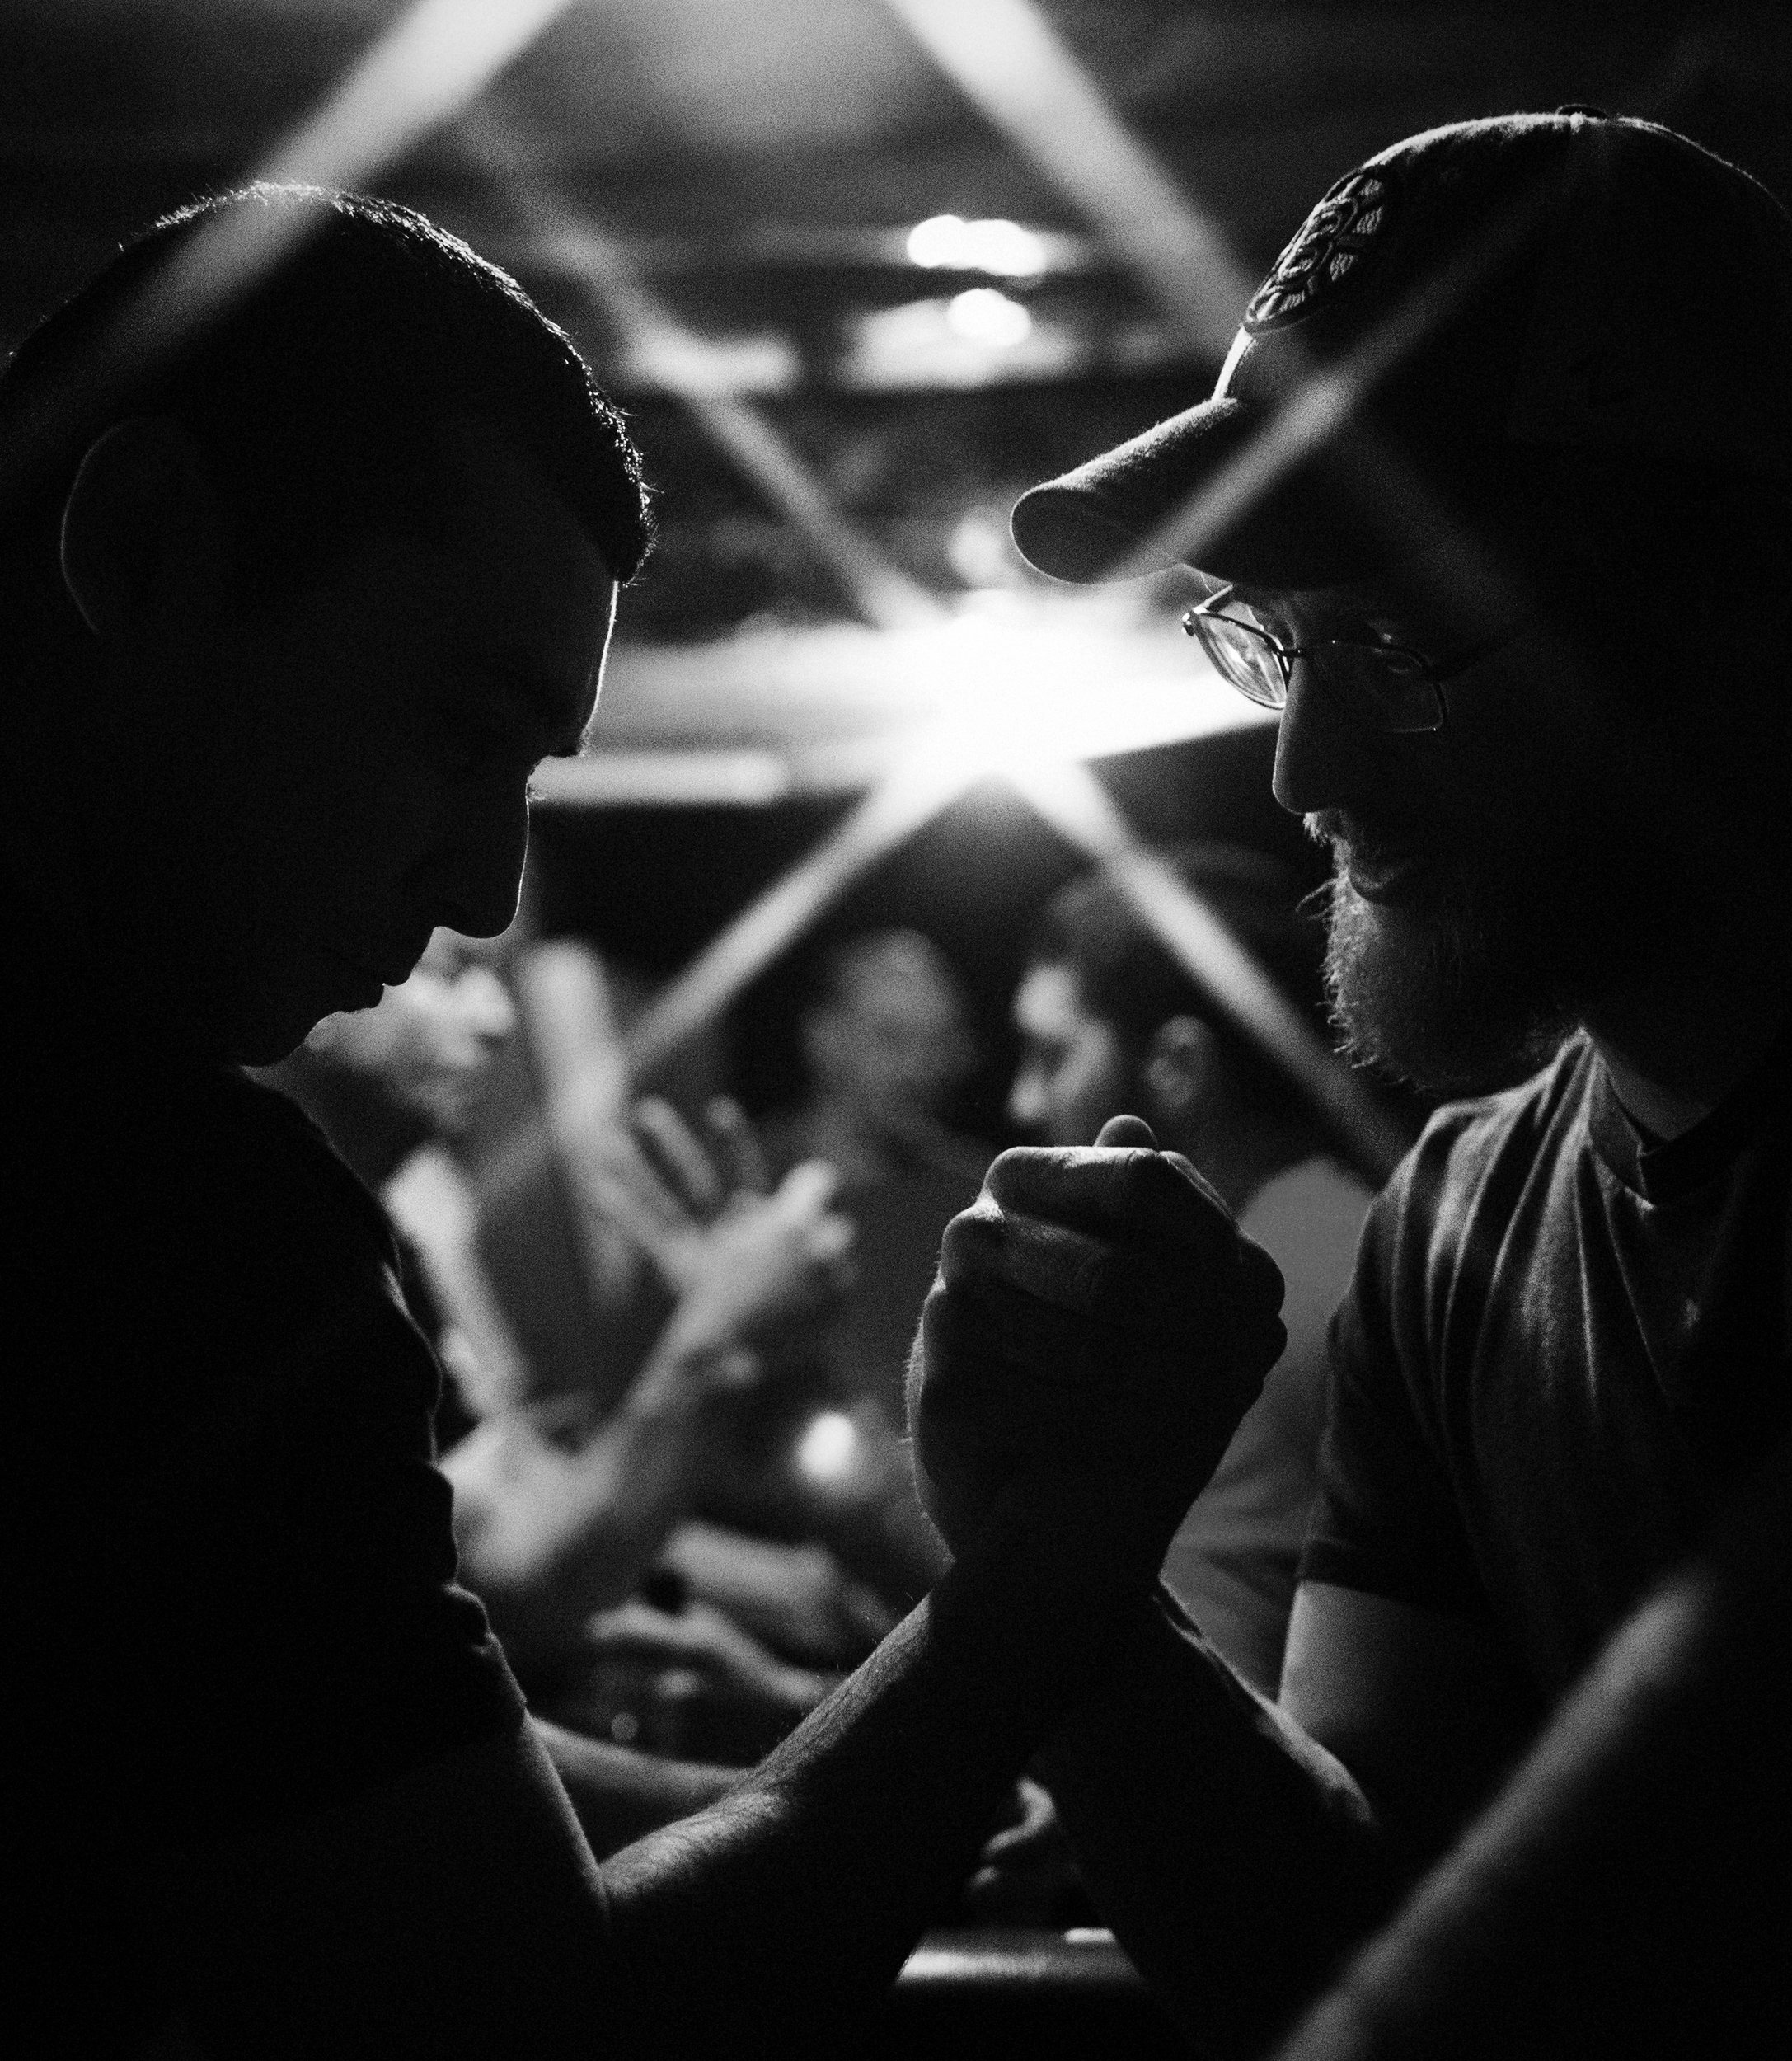 Every Thursday night, a dozen or more arm wrestlers from across Massachusetts gather in a basement in West Bridgewater to practice their arm wrestling techniques. March 3, 2016. (Photo by Adam Glanzman/GroundTruth)